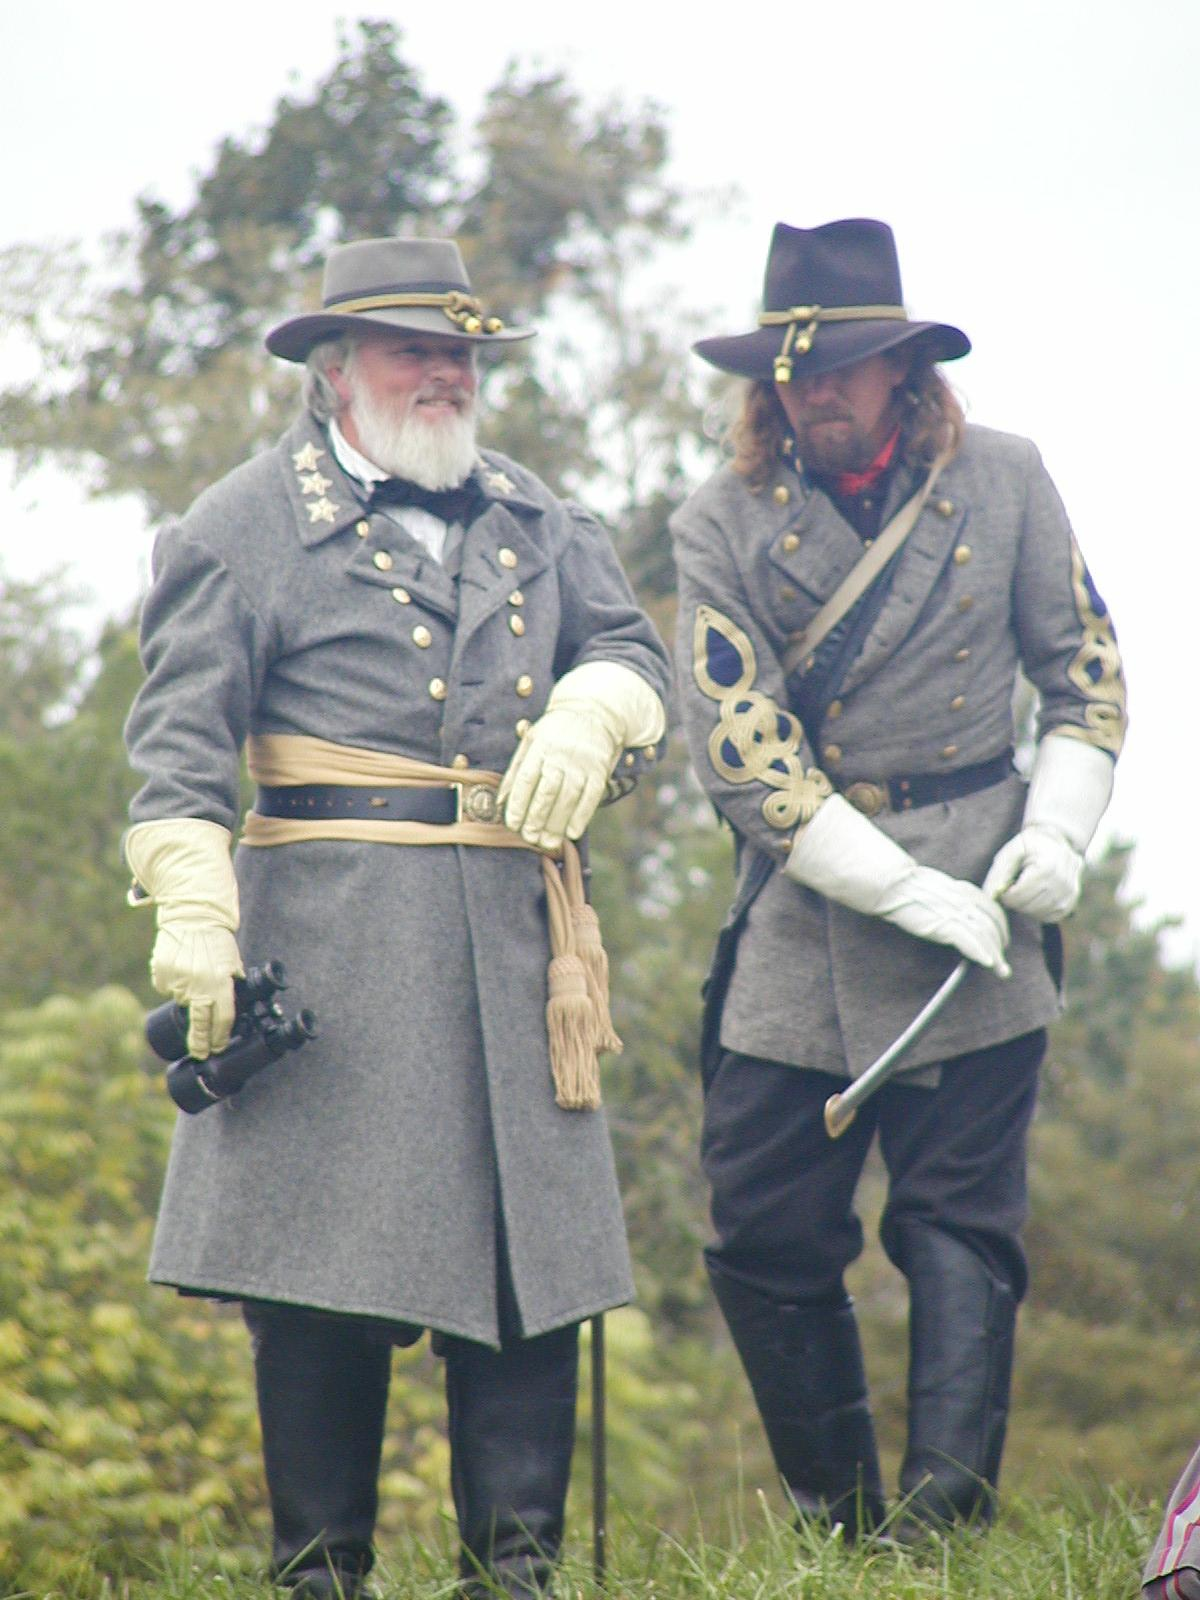 Confederate Sharpshooter Things To Do This Weekend